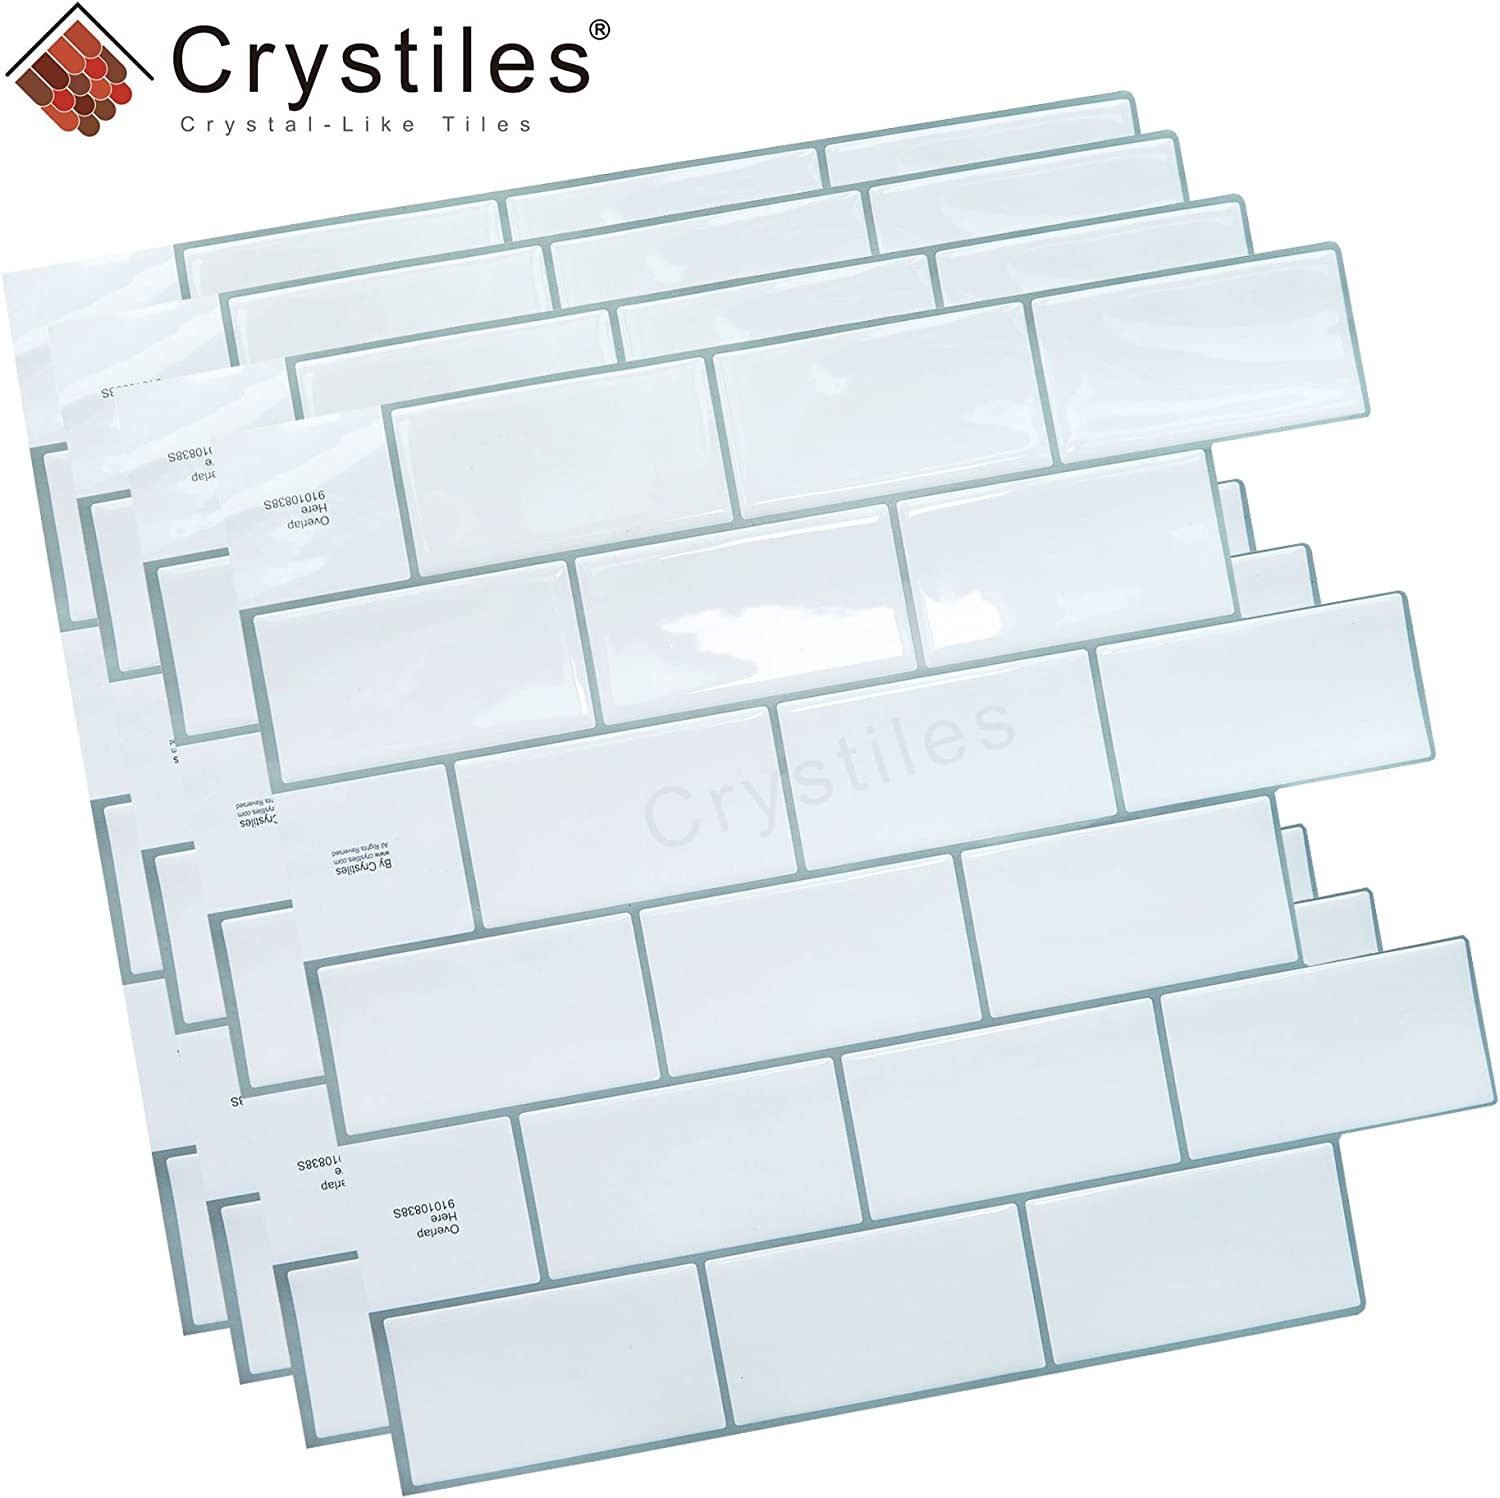 "10/"" X 10/"" Each 6 Sheets Pack 91010835A Crystiles Peel and Stick Self-Adhesive DIY Backsplash Stick-on Vinyl Wall Tiles for Kitchen and Bathroom D/écor Projects Item# 91010838 Subway White"